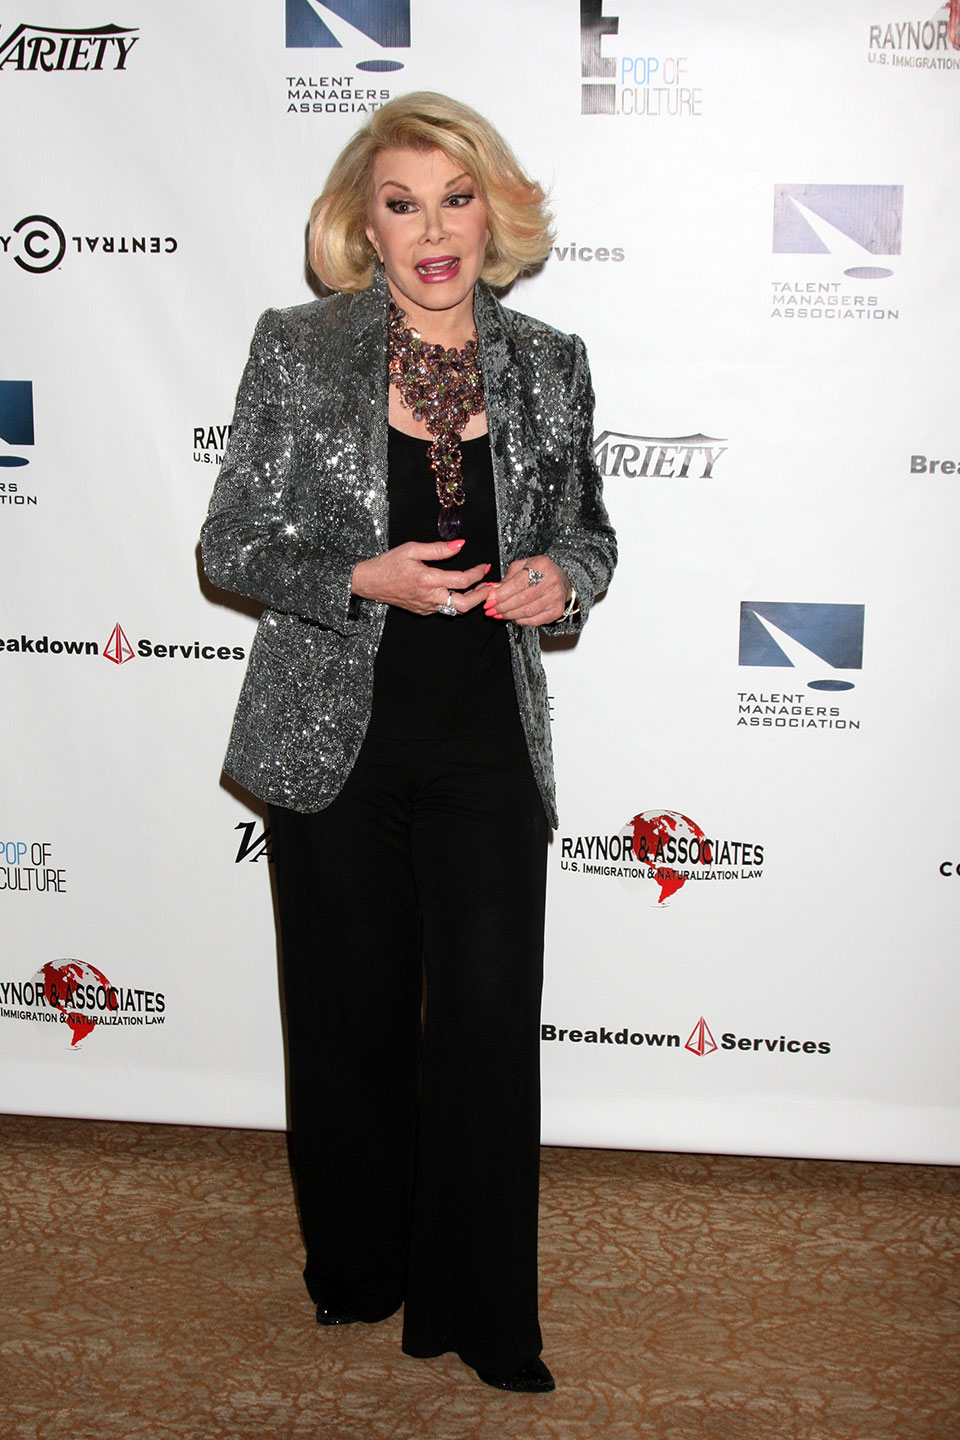 Joan Rivers on the Red Carpet. Photo from Shutterstock.